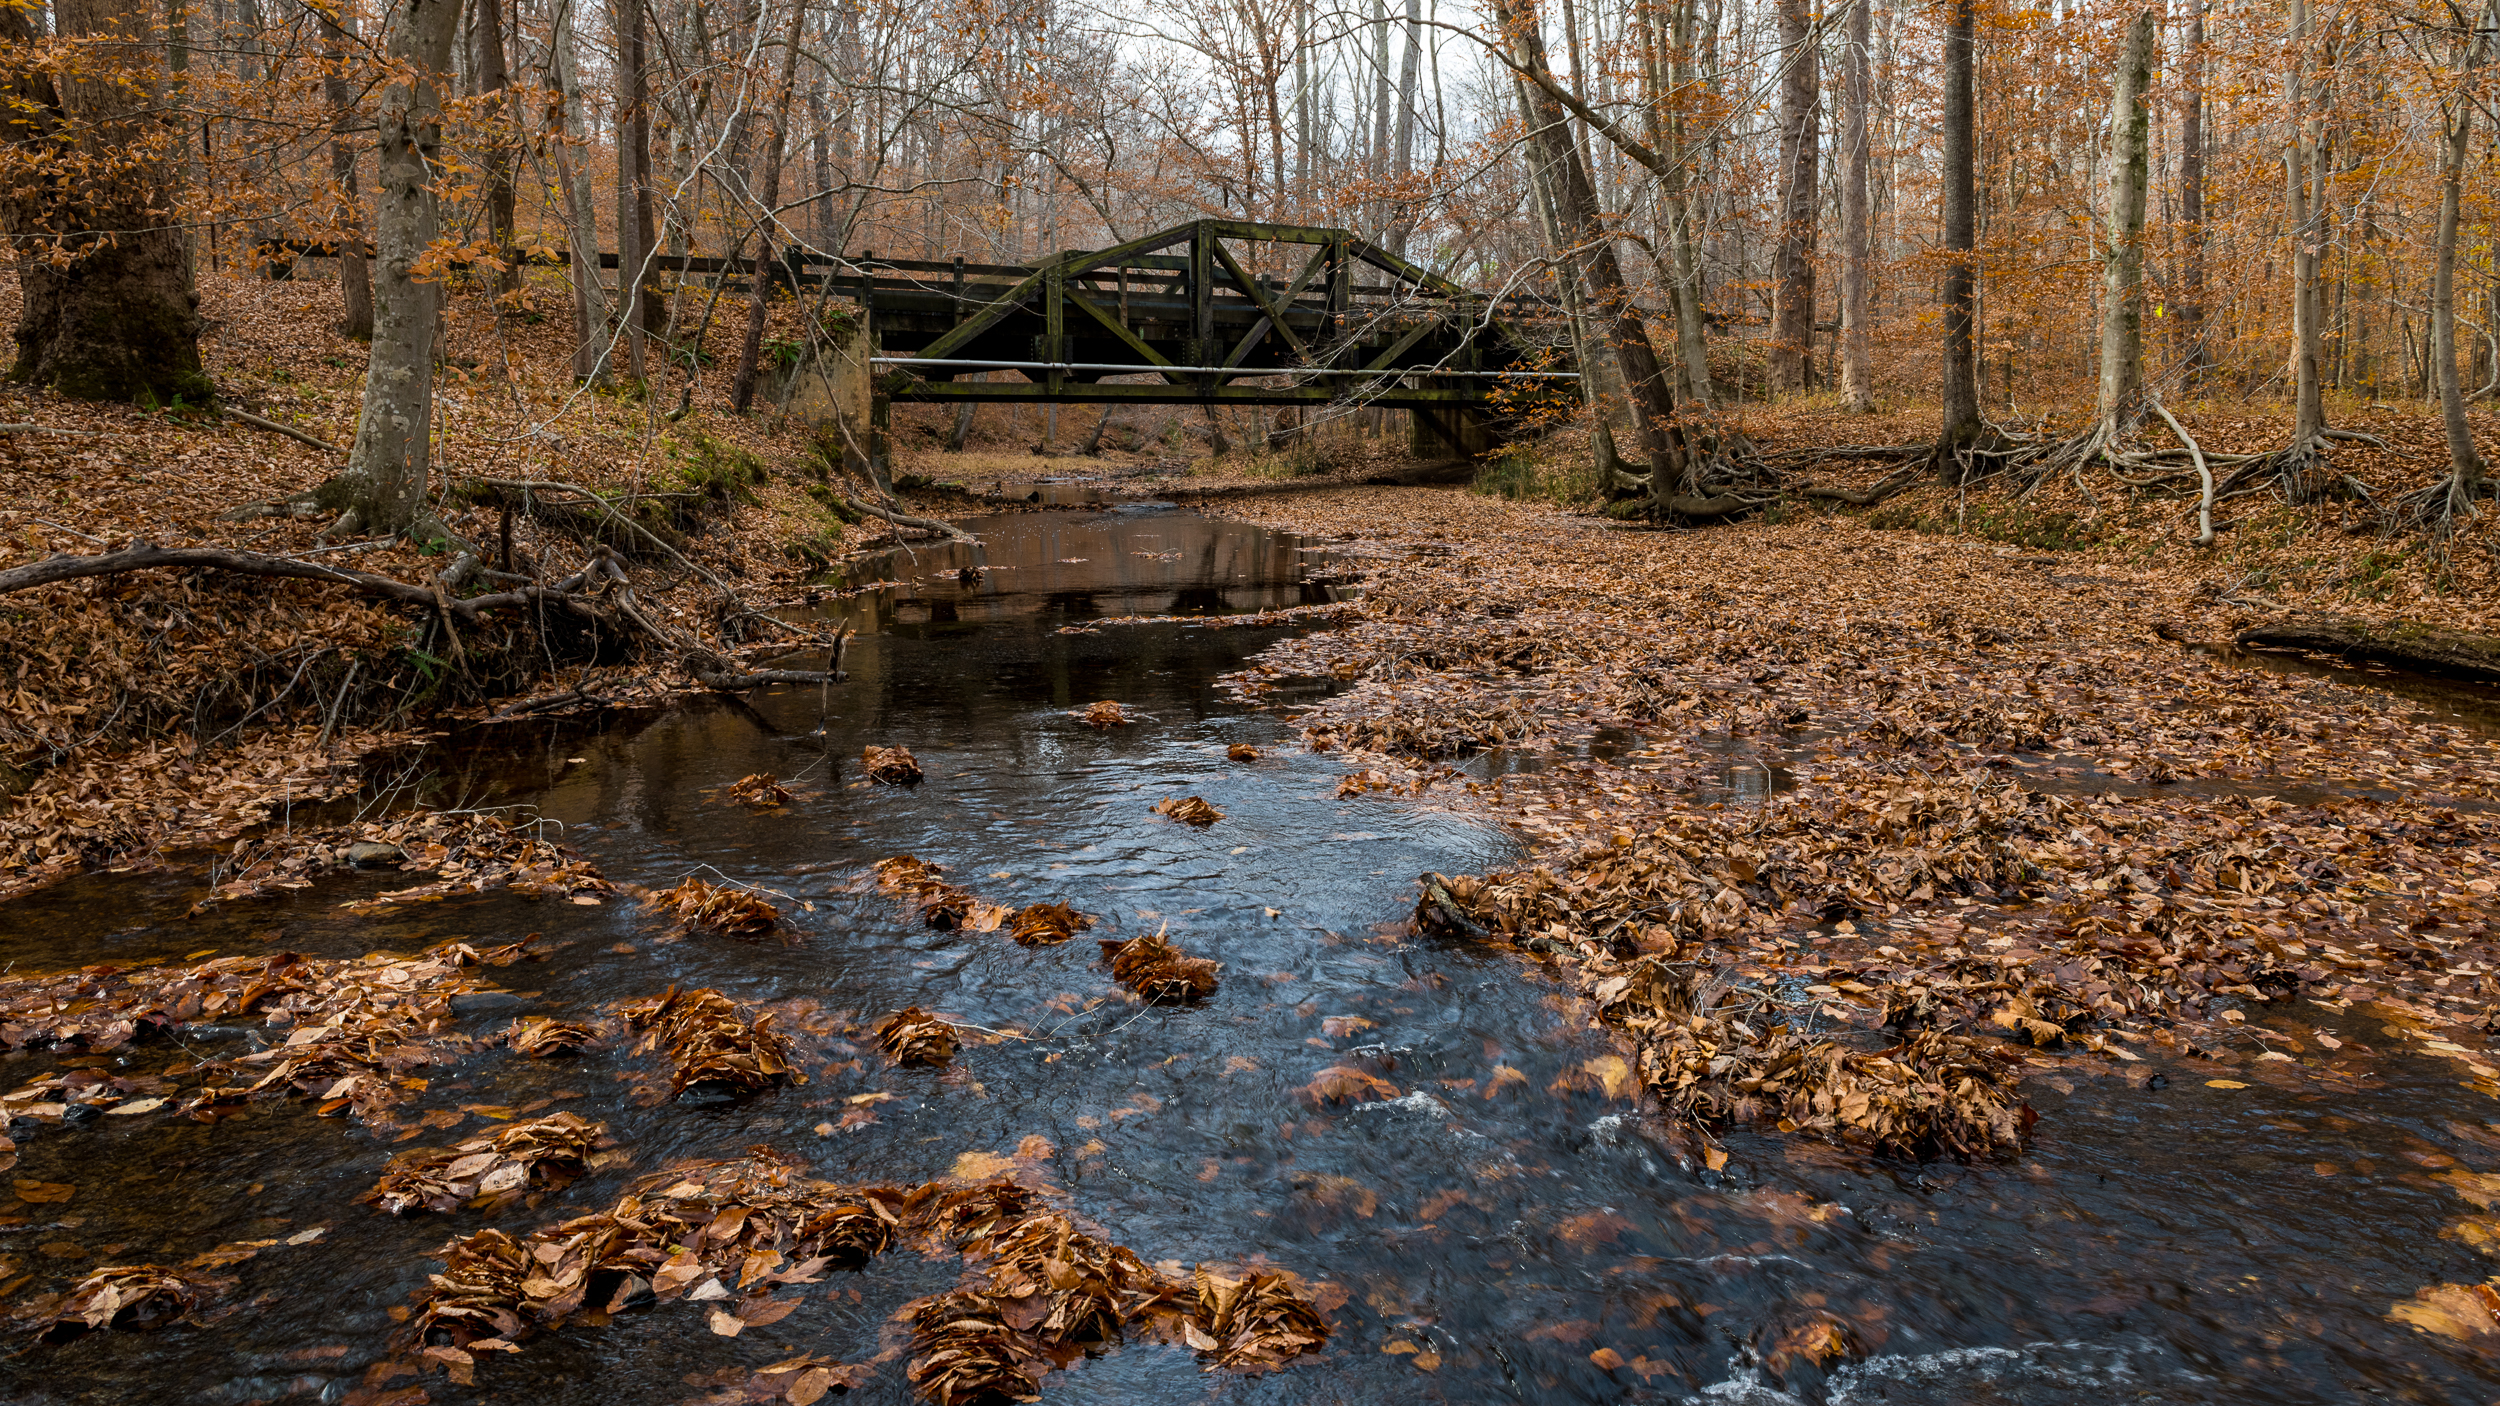 Another bridge at the edge of the Prince William Forest scenic drive